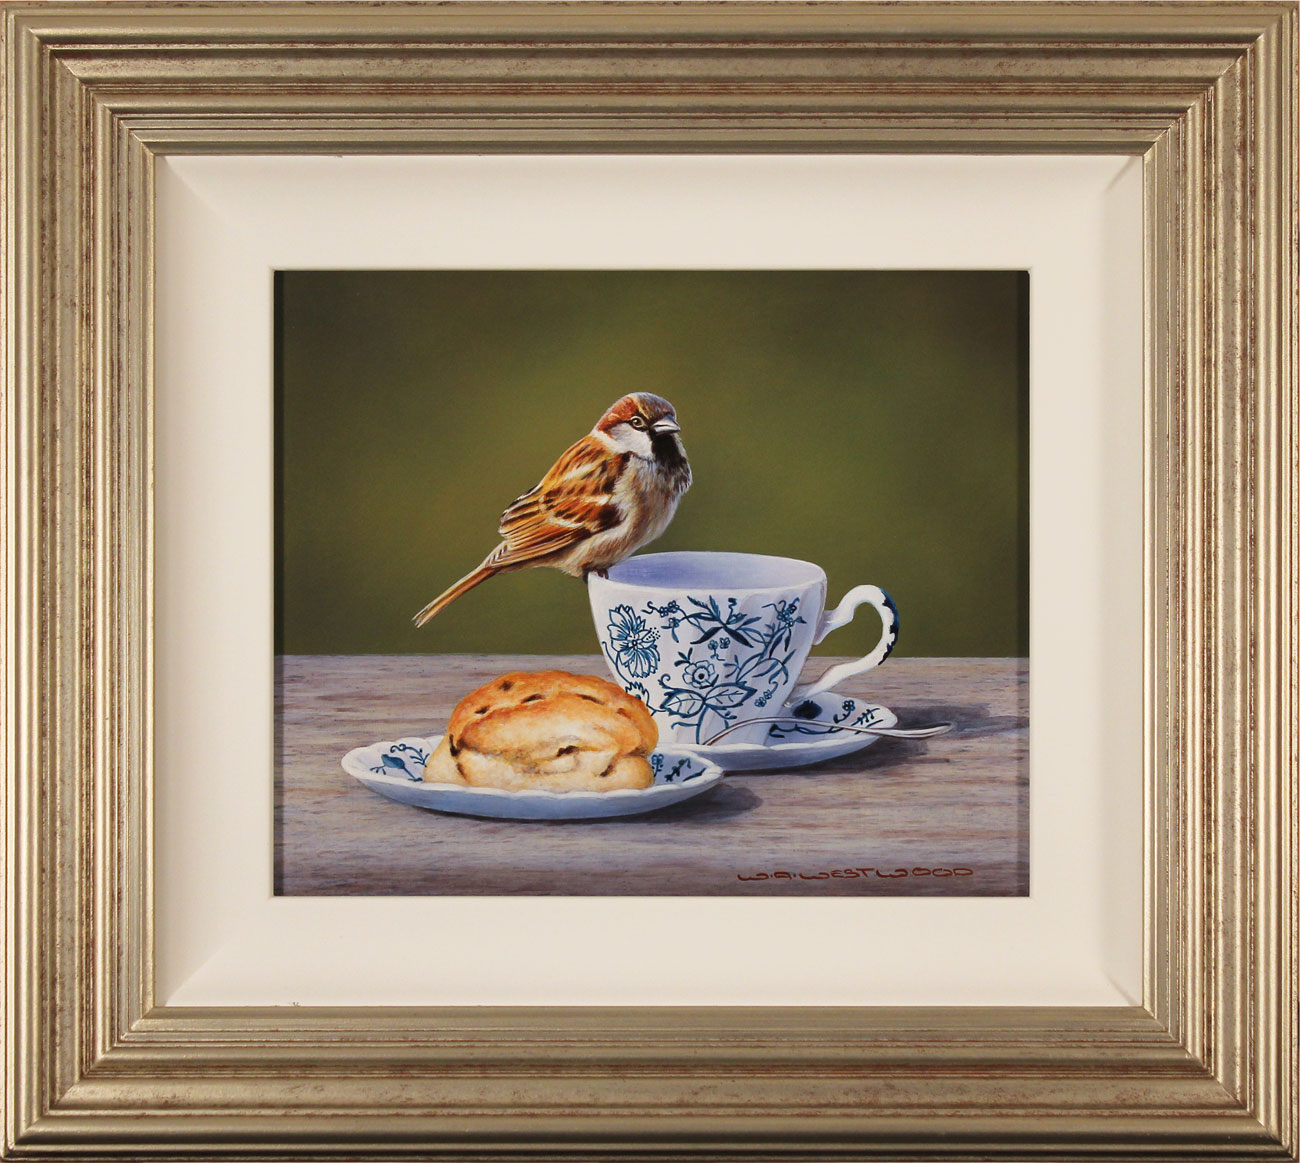 Wayne Westwood, Original oil painting on panel, Afternoon Tea, click to enlarge